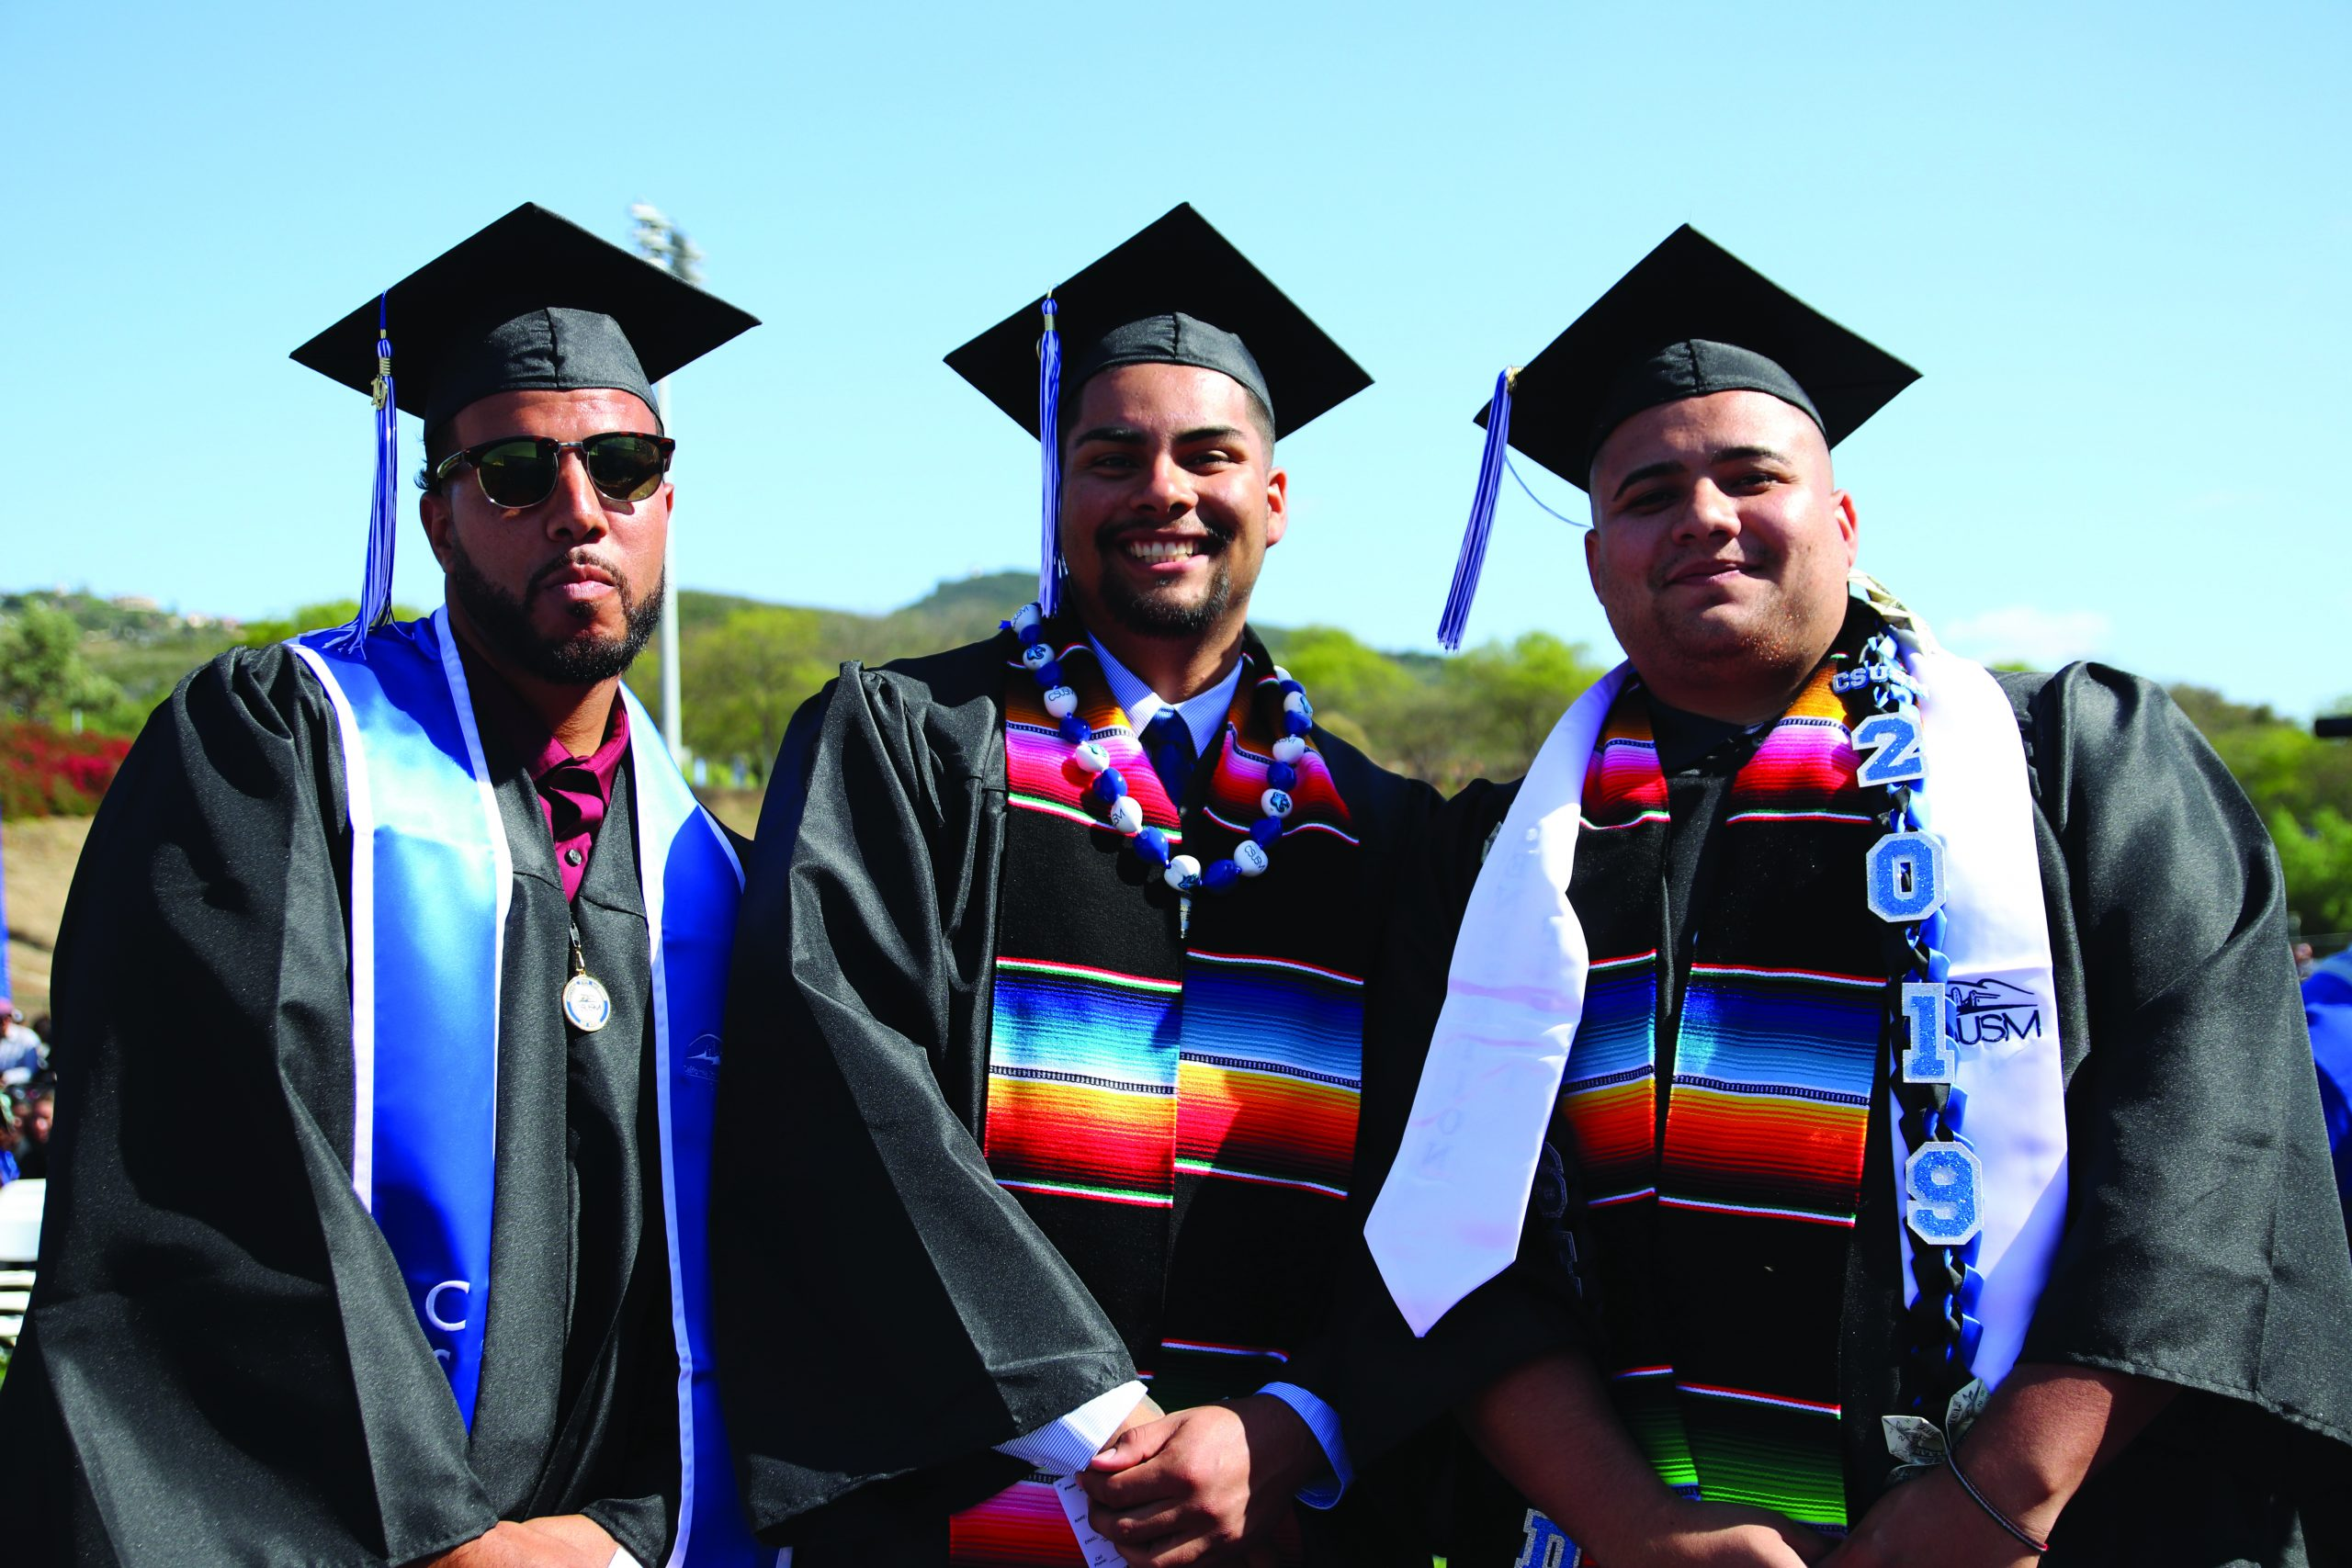 Diversity and Equity Graduation Requirements at California State University San Marcos